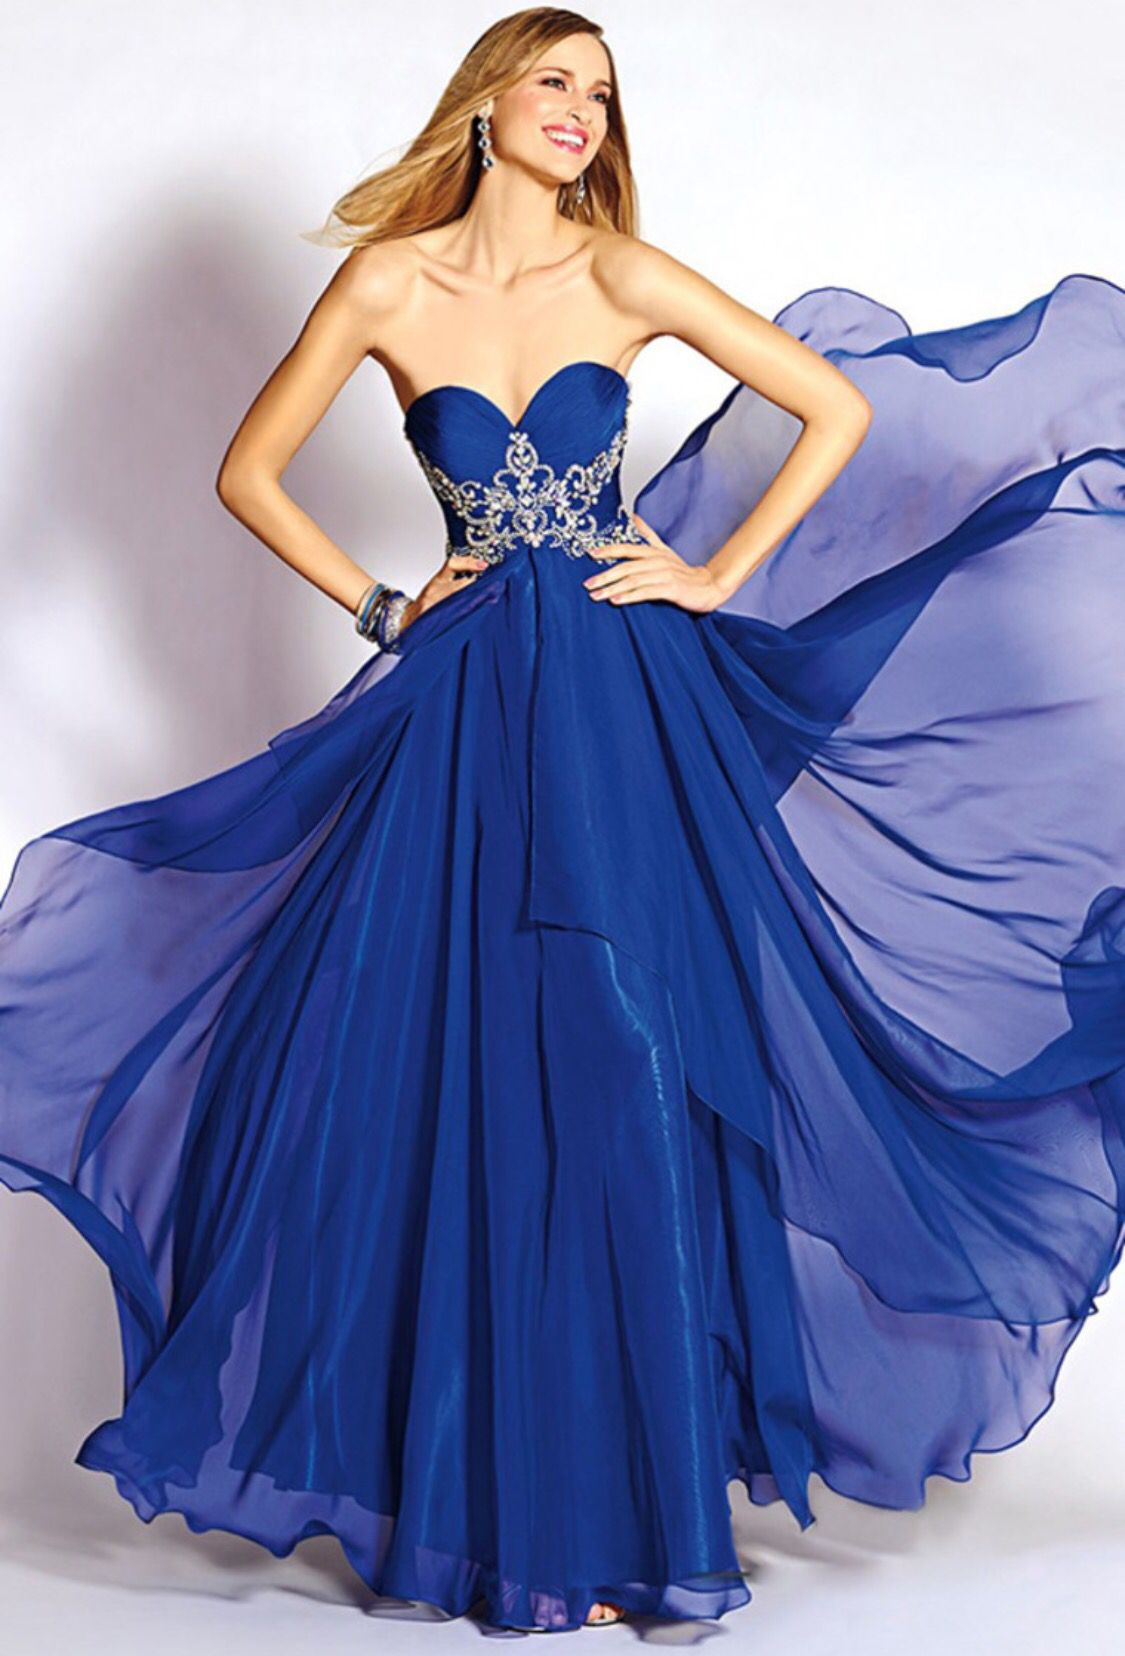 Rent prom dresses colorado springs